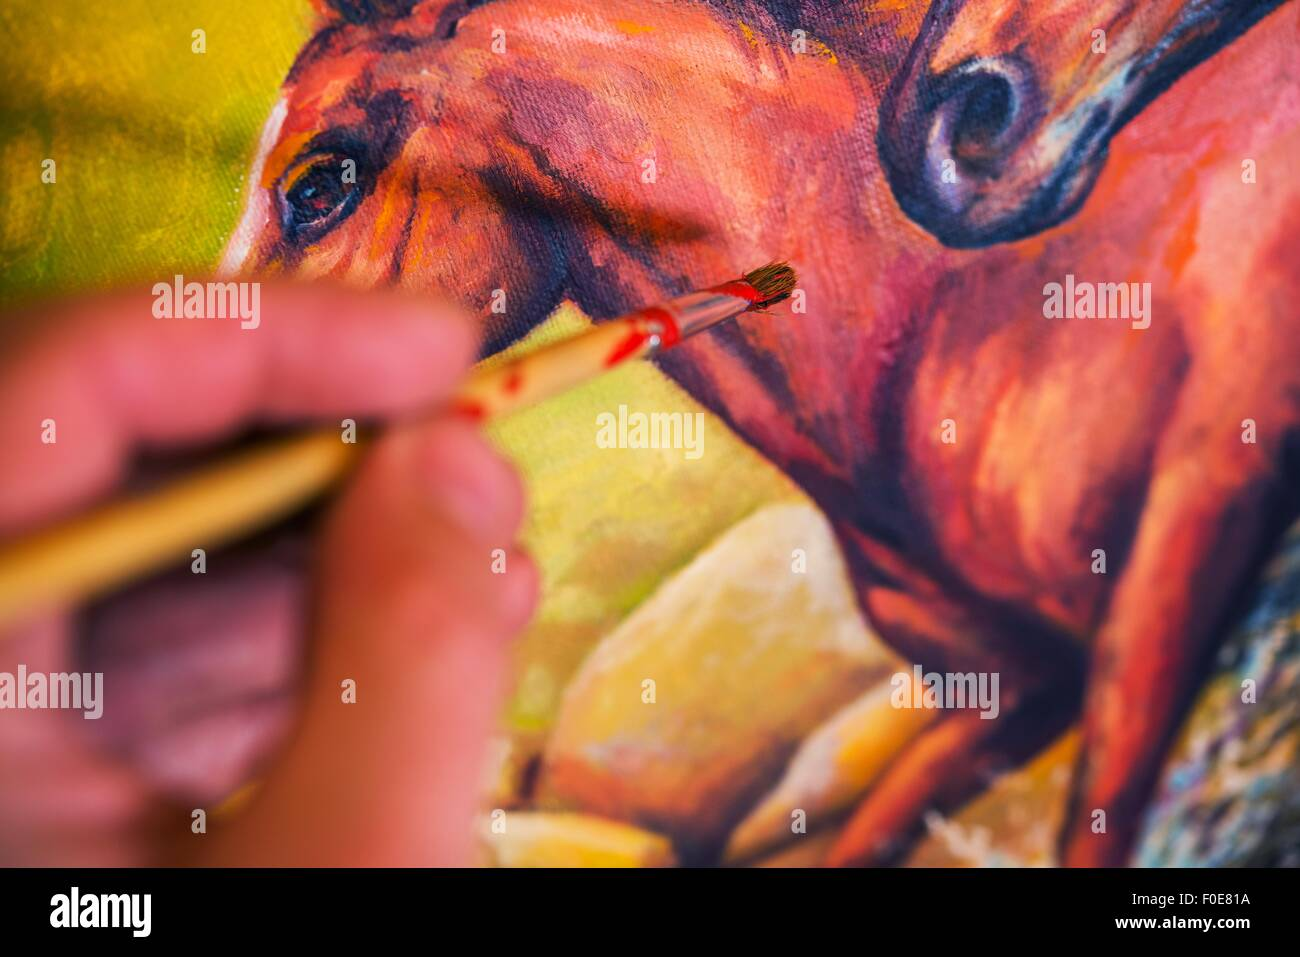 Painting On Canvas Horses Oil Painting Closeup Photo Stock Photo Alamy